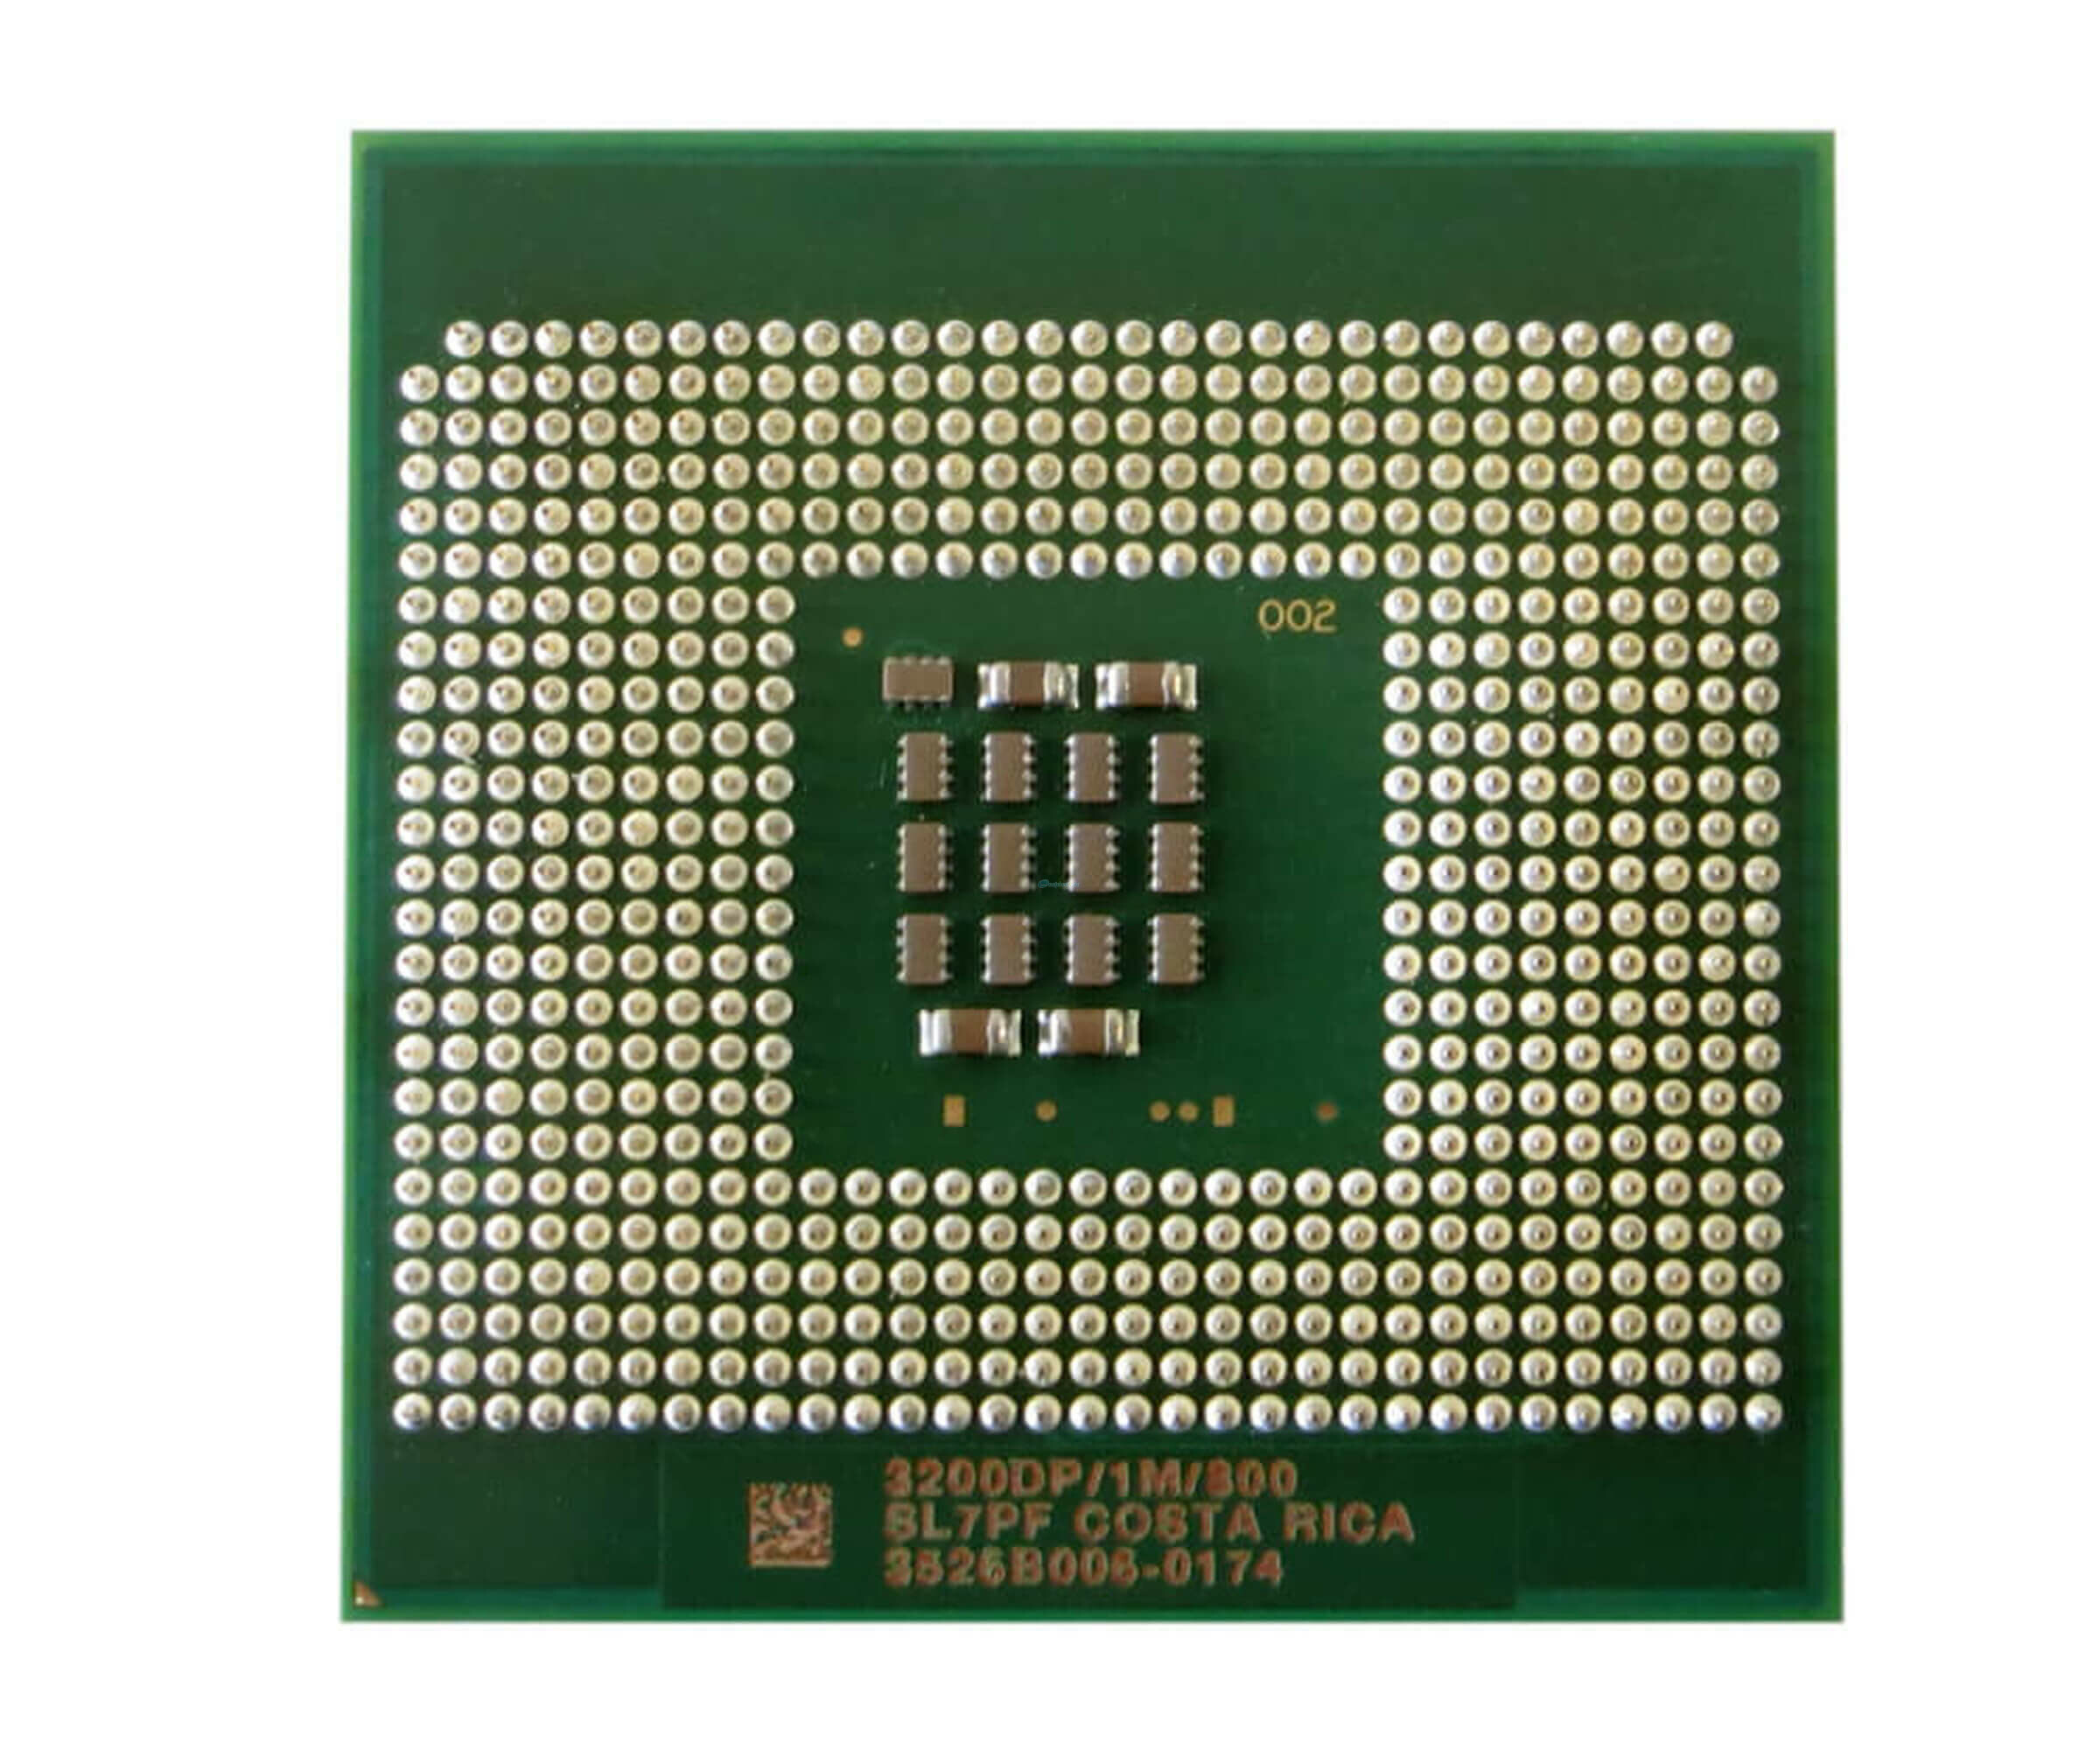 Intel Xeon Prozessor - 3.20 GHz Prozessor - Socket PPGA604 - 1 MB - 1-Core